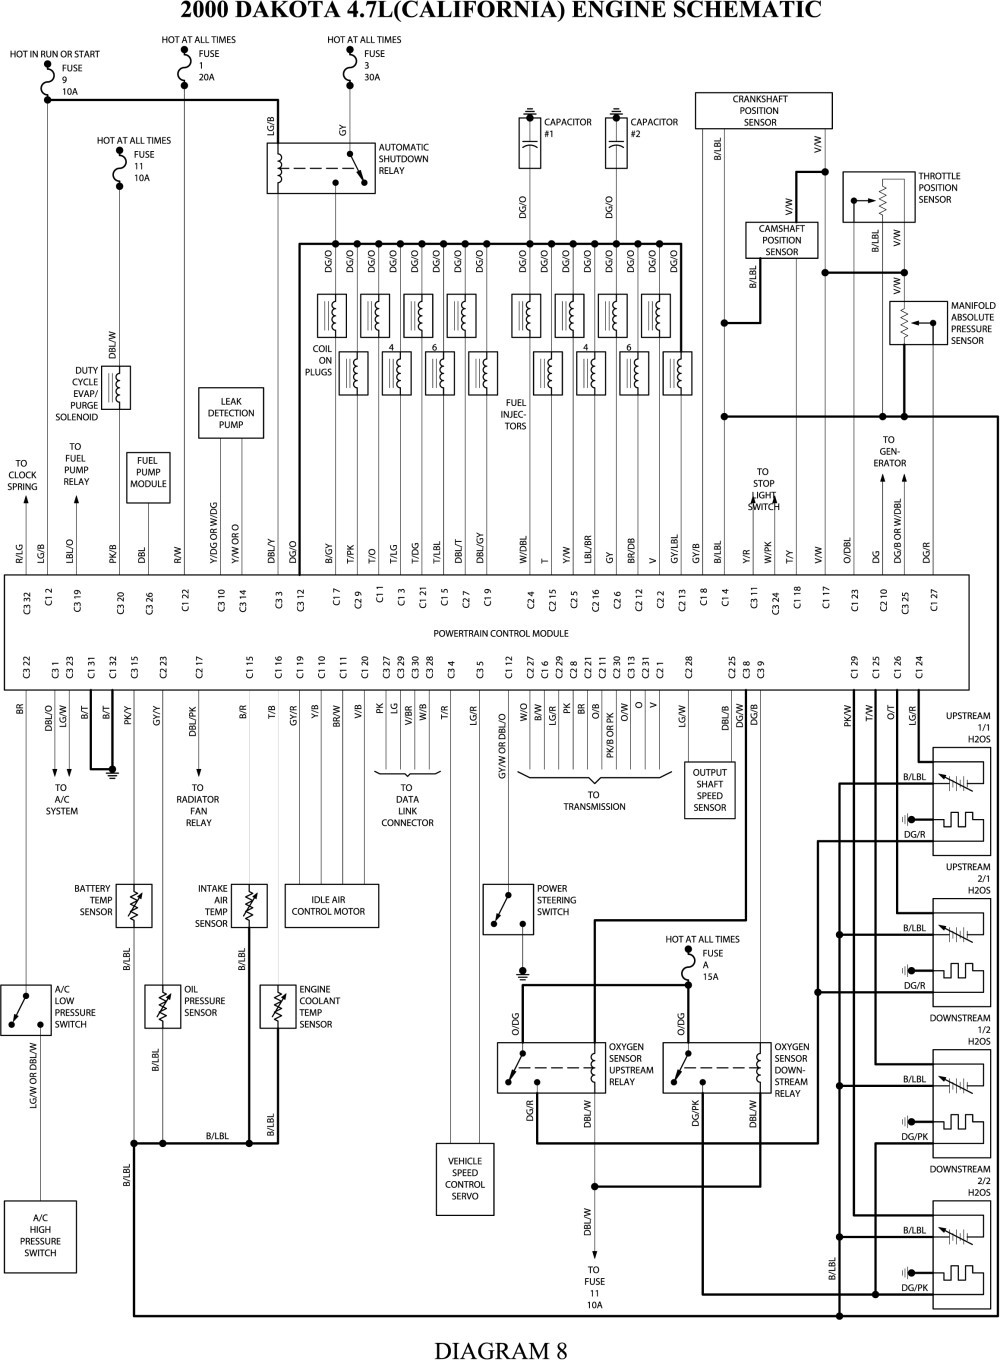 [DIAGRAM_3NM]  F36555 Kenworth Wiring Diagrams For 1996 | Wiring Library | Kenworth Headlight Wiring Diagram Free Download |  | Wiring Library